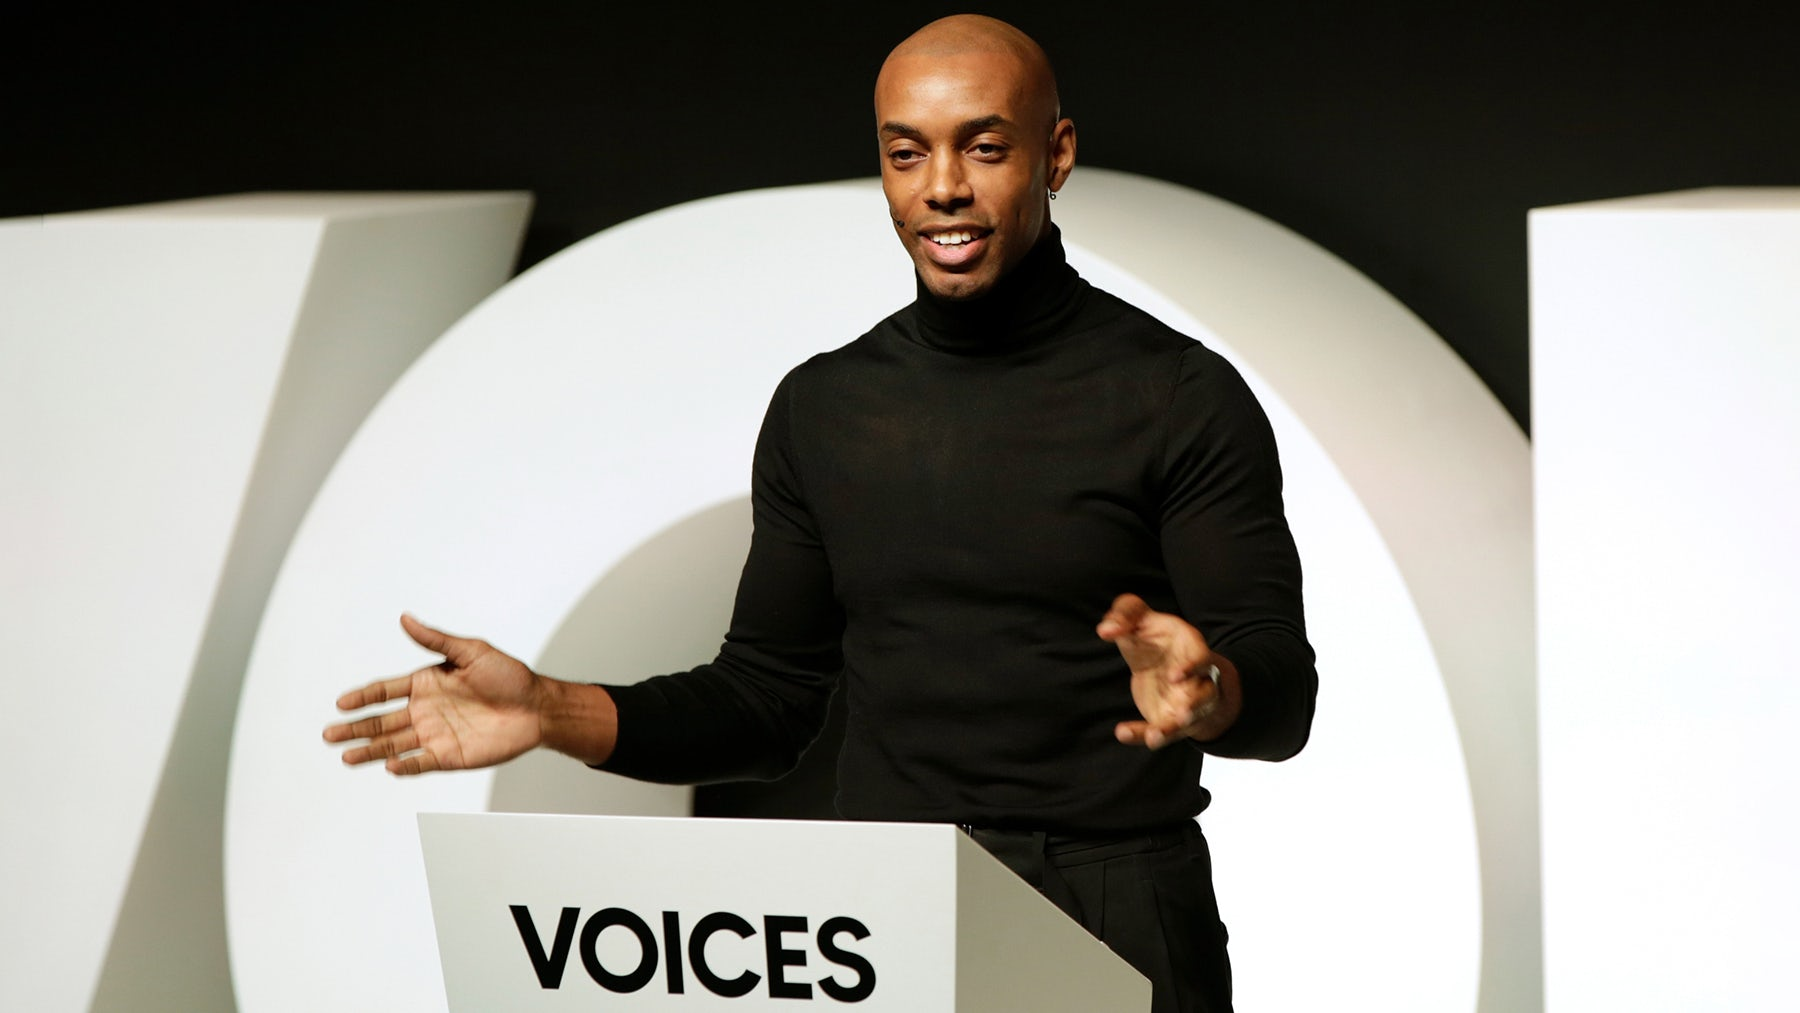 The BoF Podcast: Casey Gerald: 'The Way We're Taught to Live Has Got to Change'